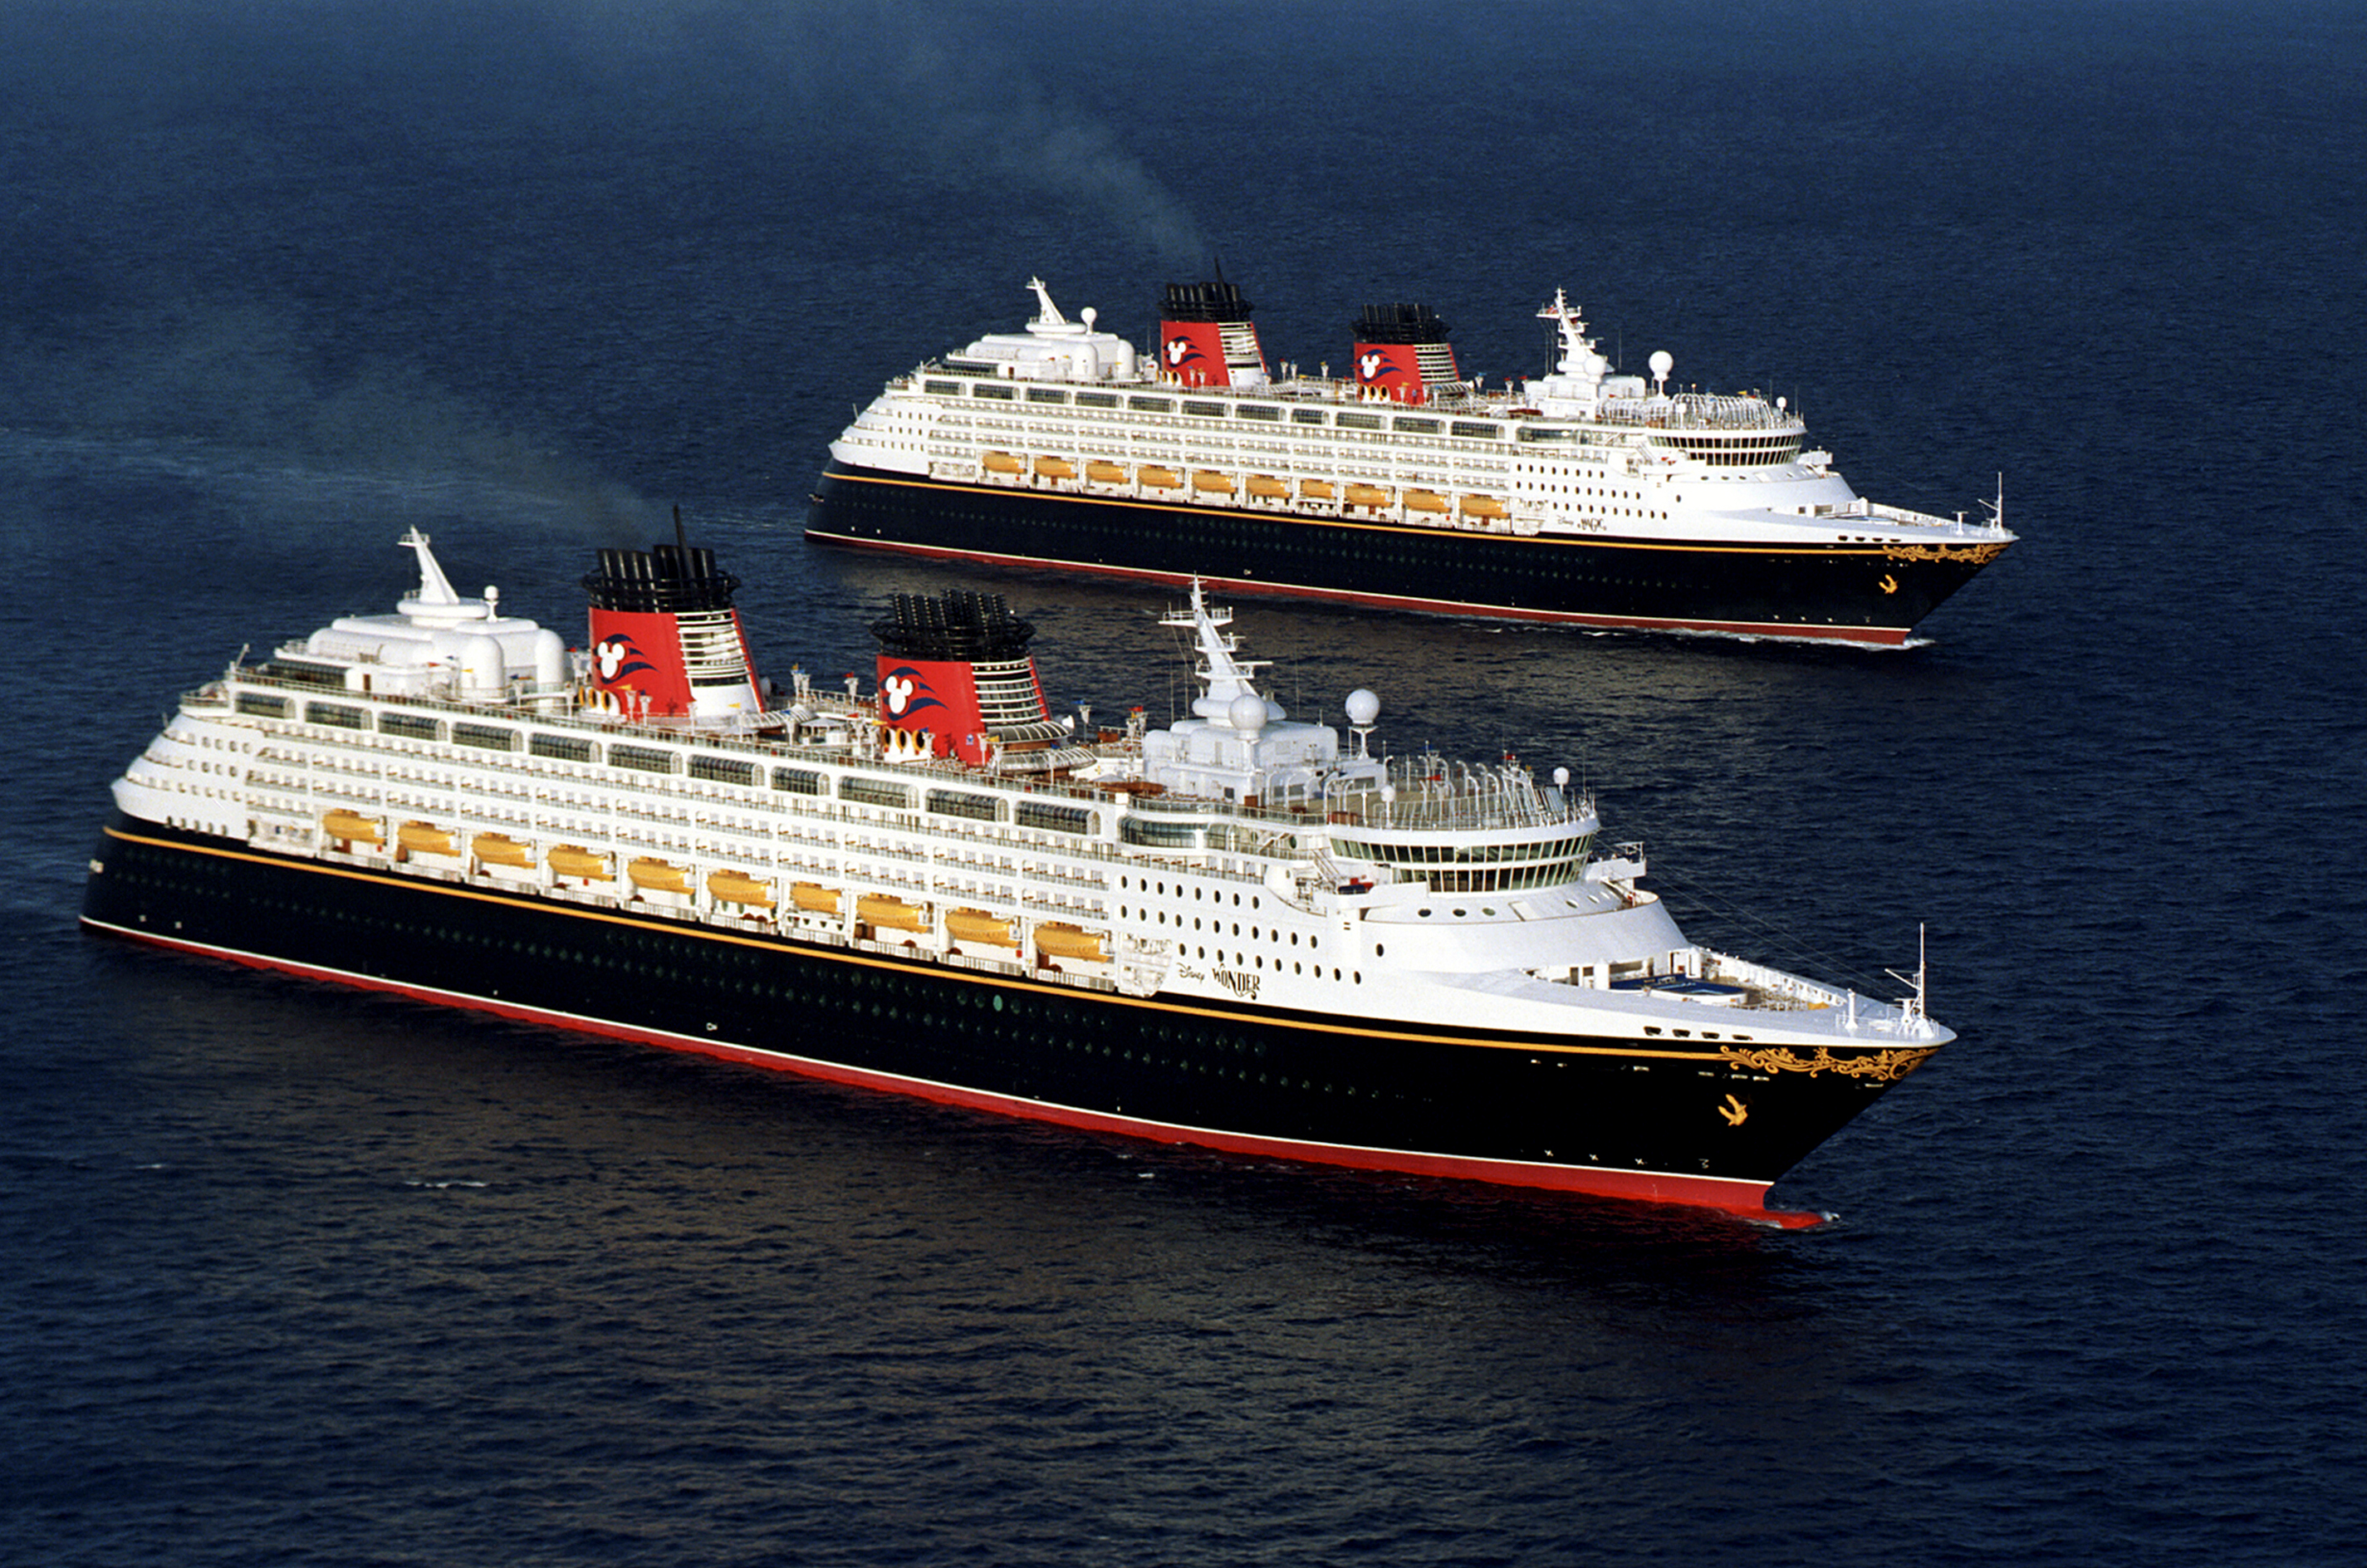 Late 2013 Itineraries Now Available For Disney Magic